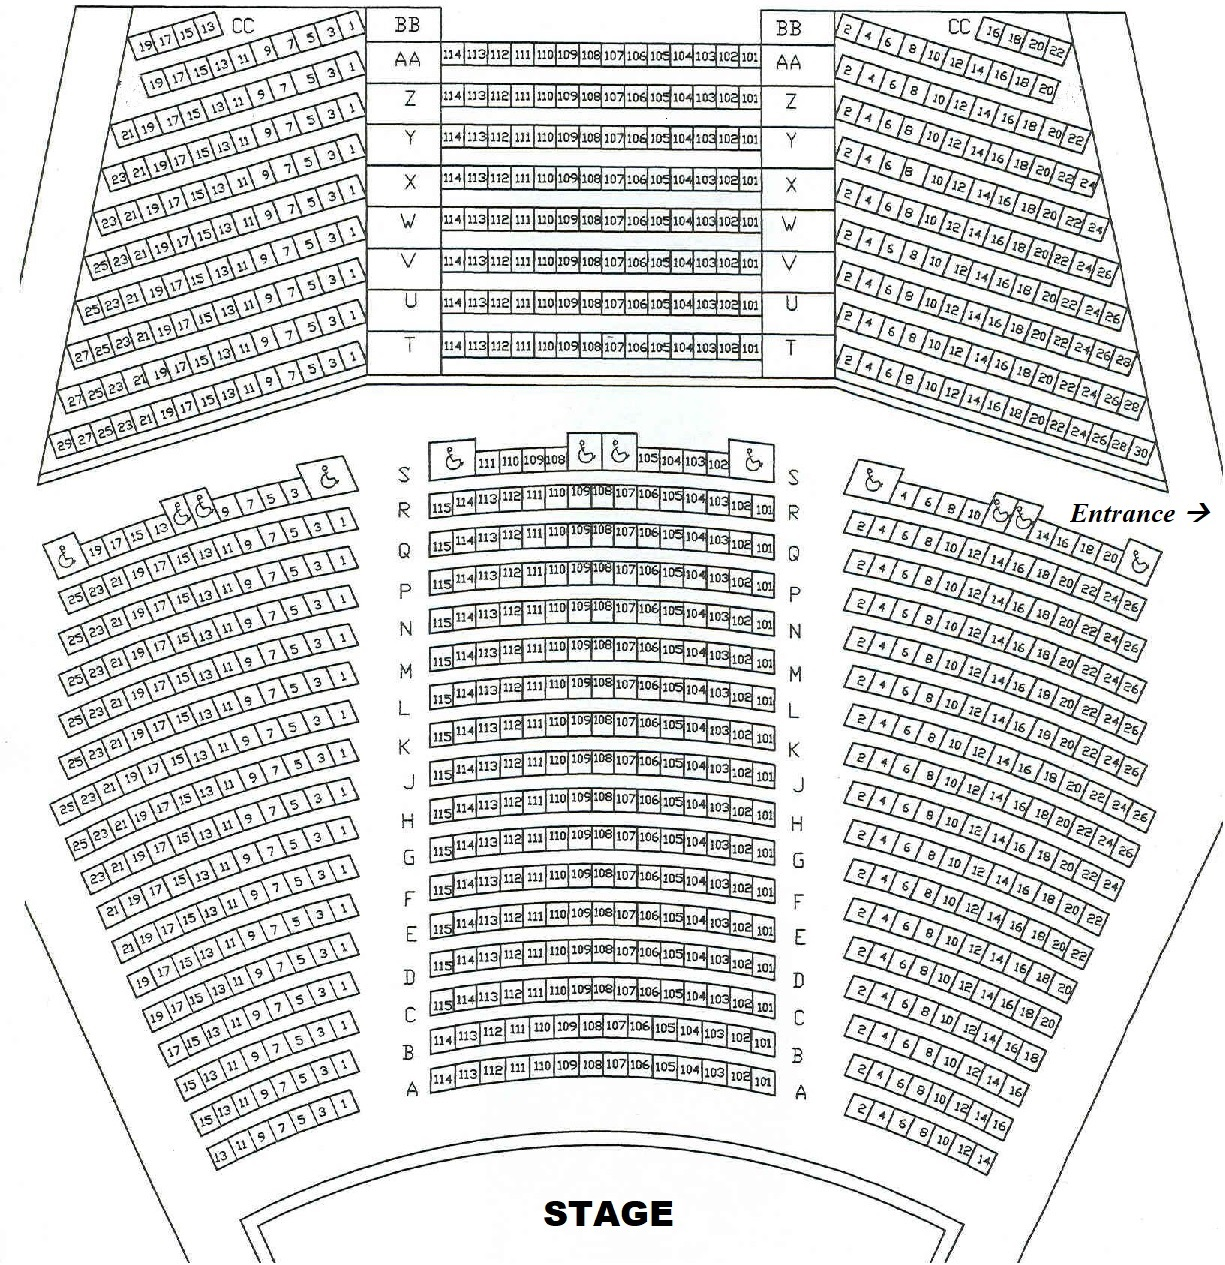 Seating Chart for Cole Auditorium